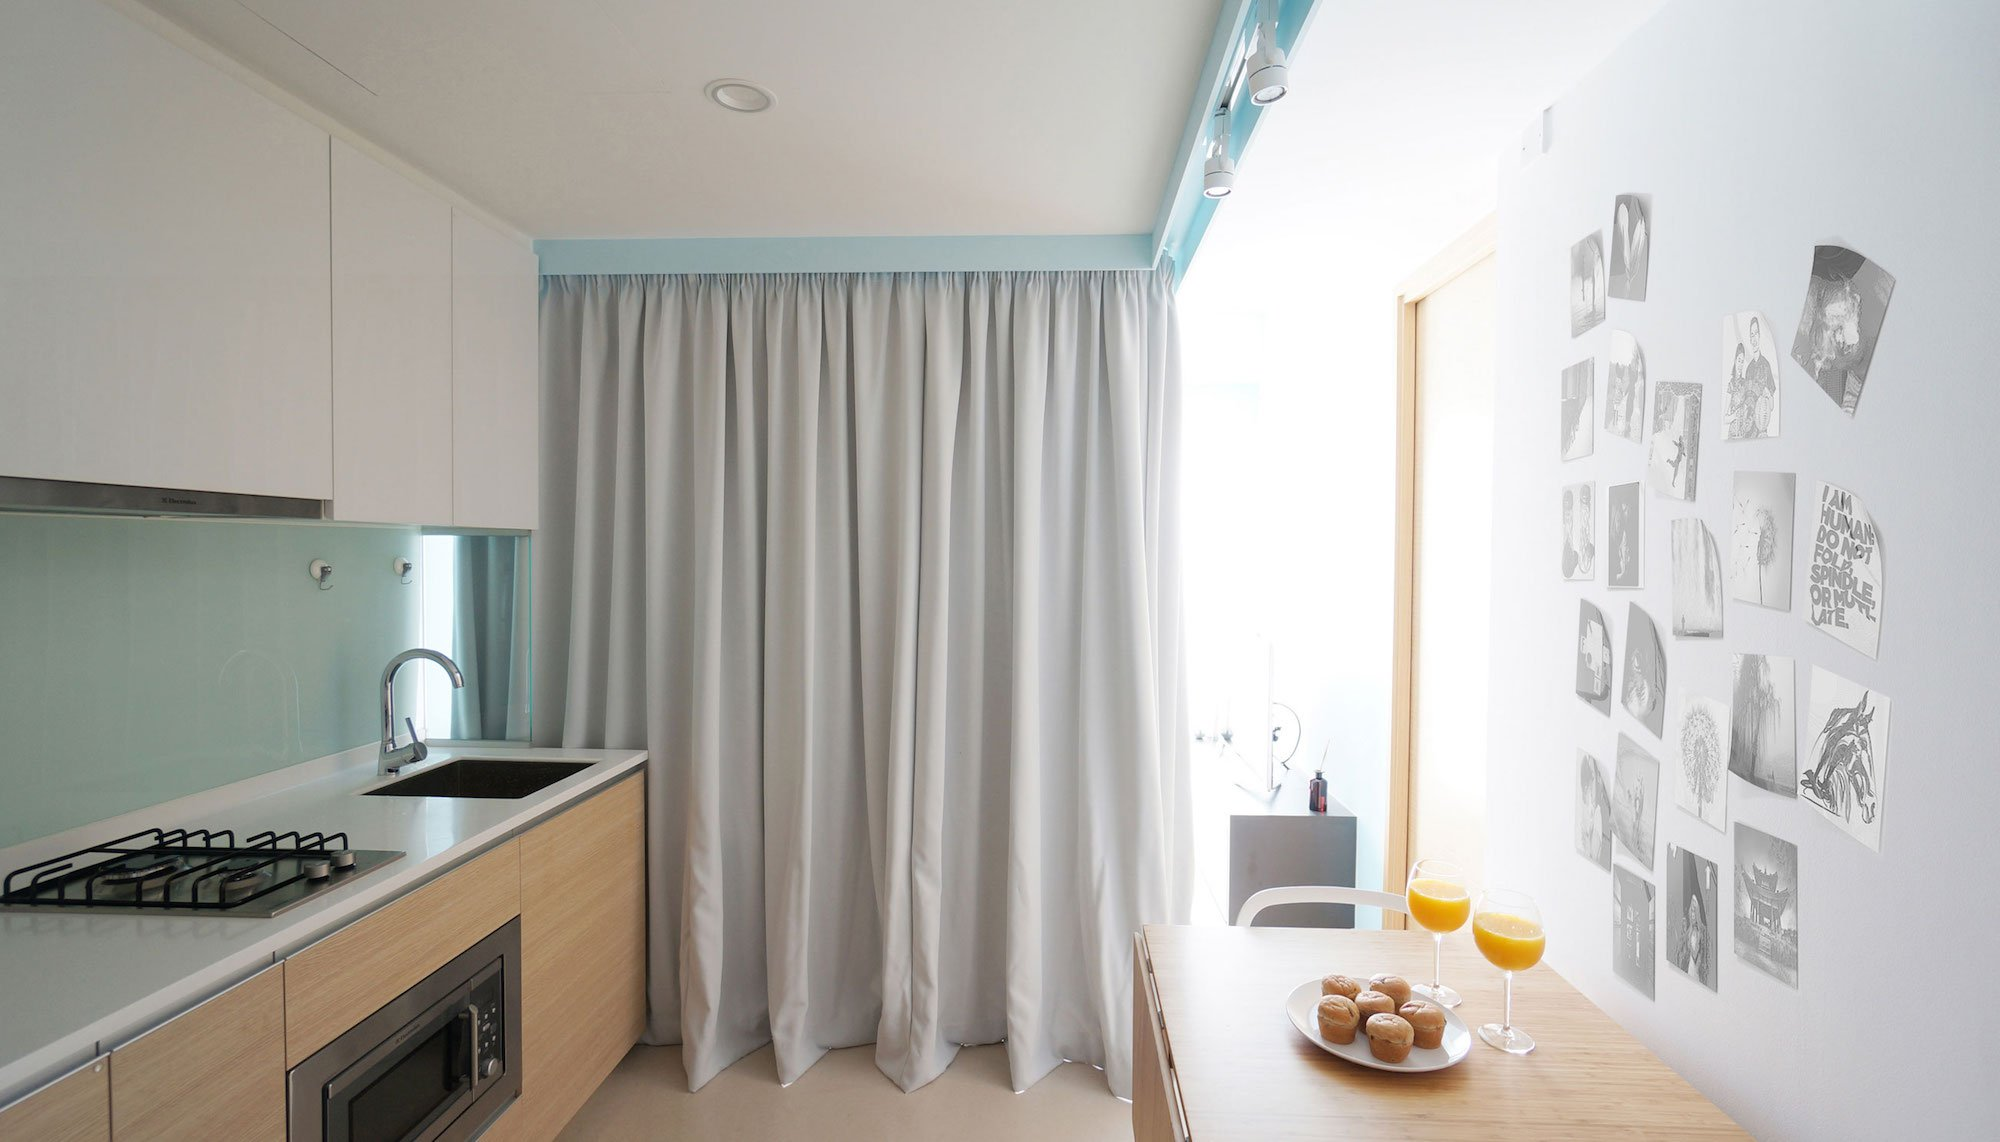 Curtain Apartment By Hue D Caandesign Architecture And